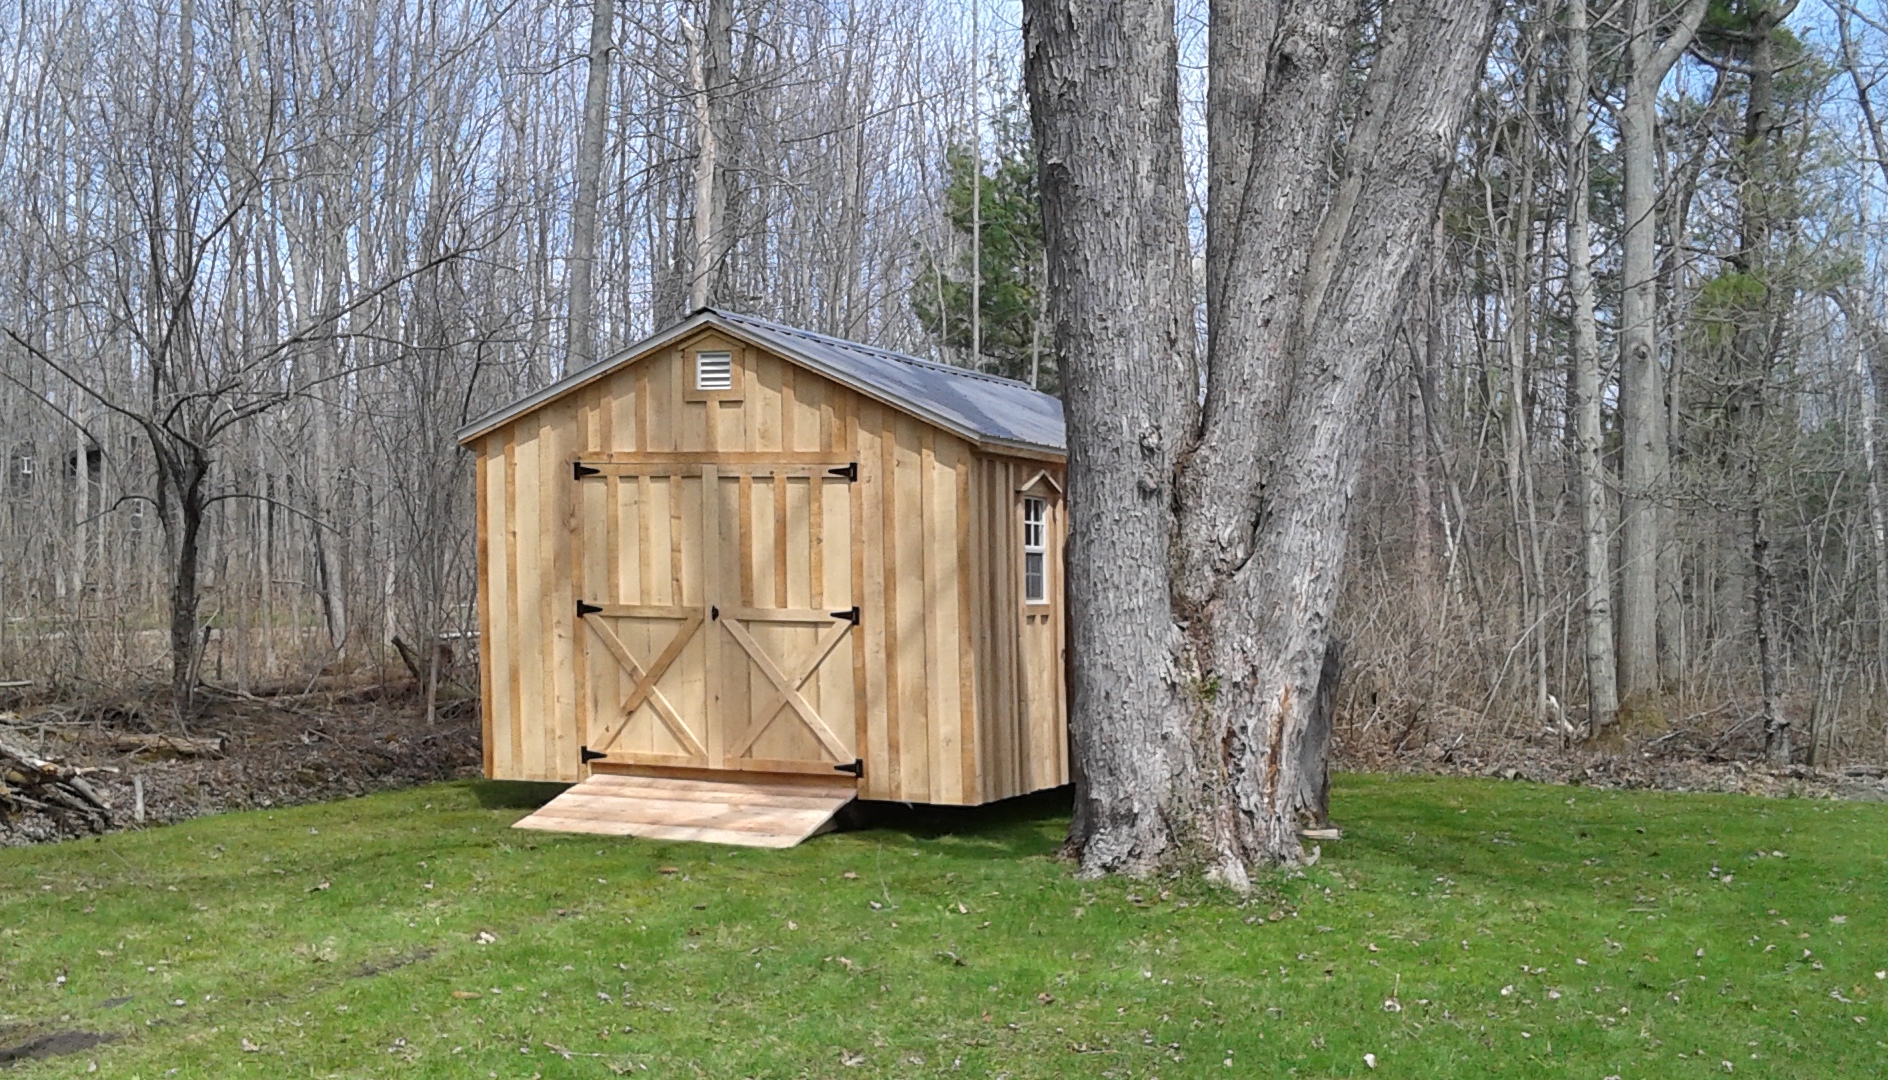 Amish Shed - Between A Swamp & Tree